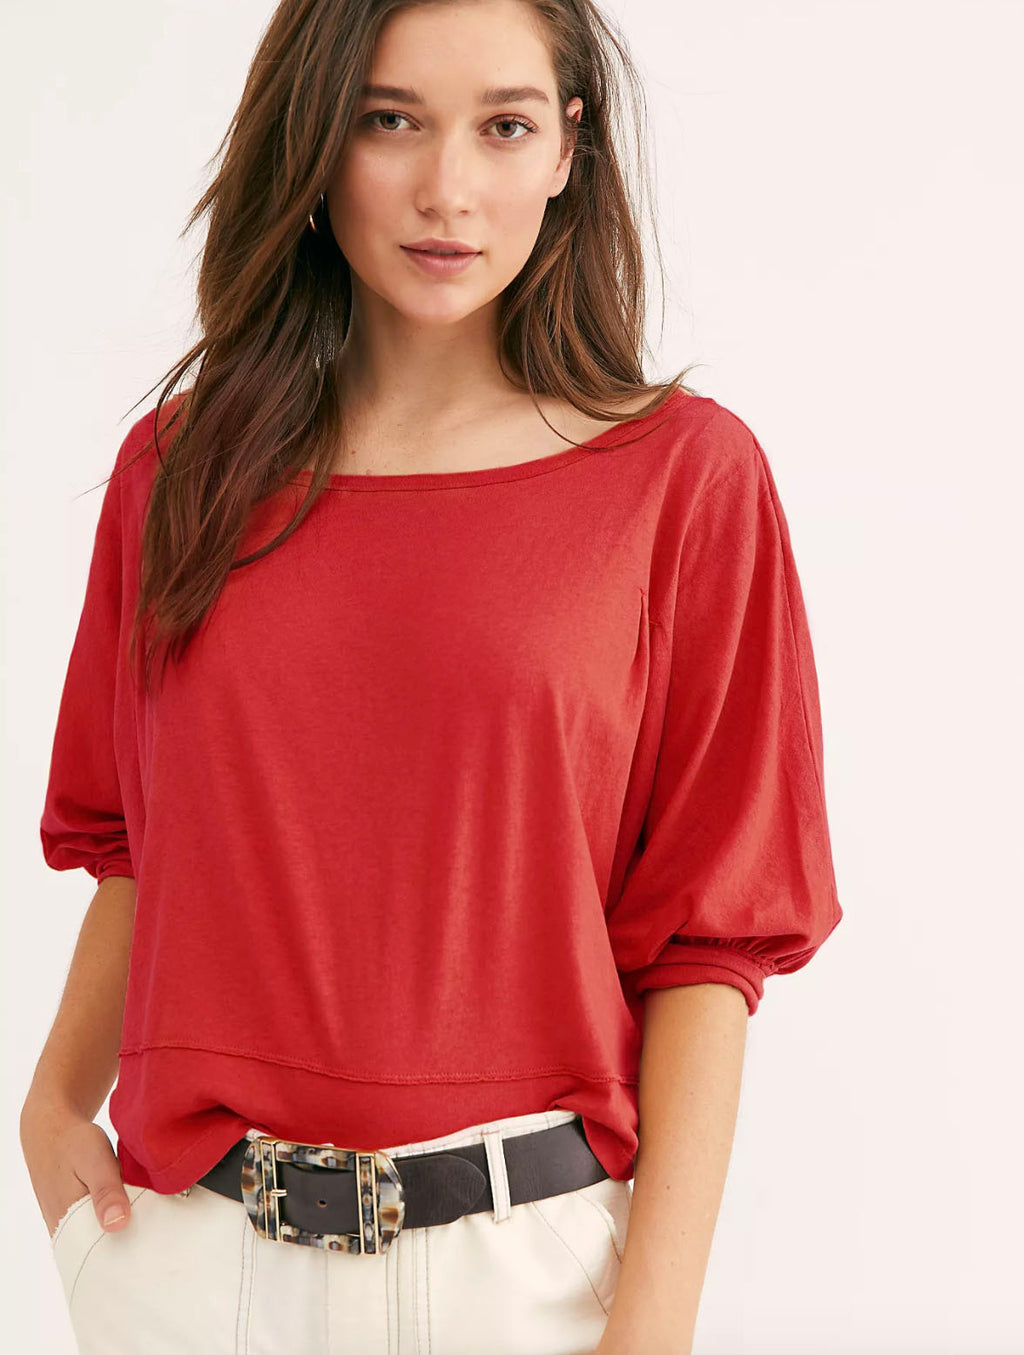 Free People Inspo Tee in Red